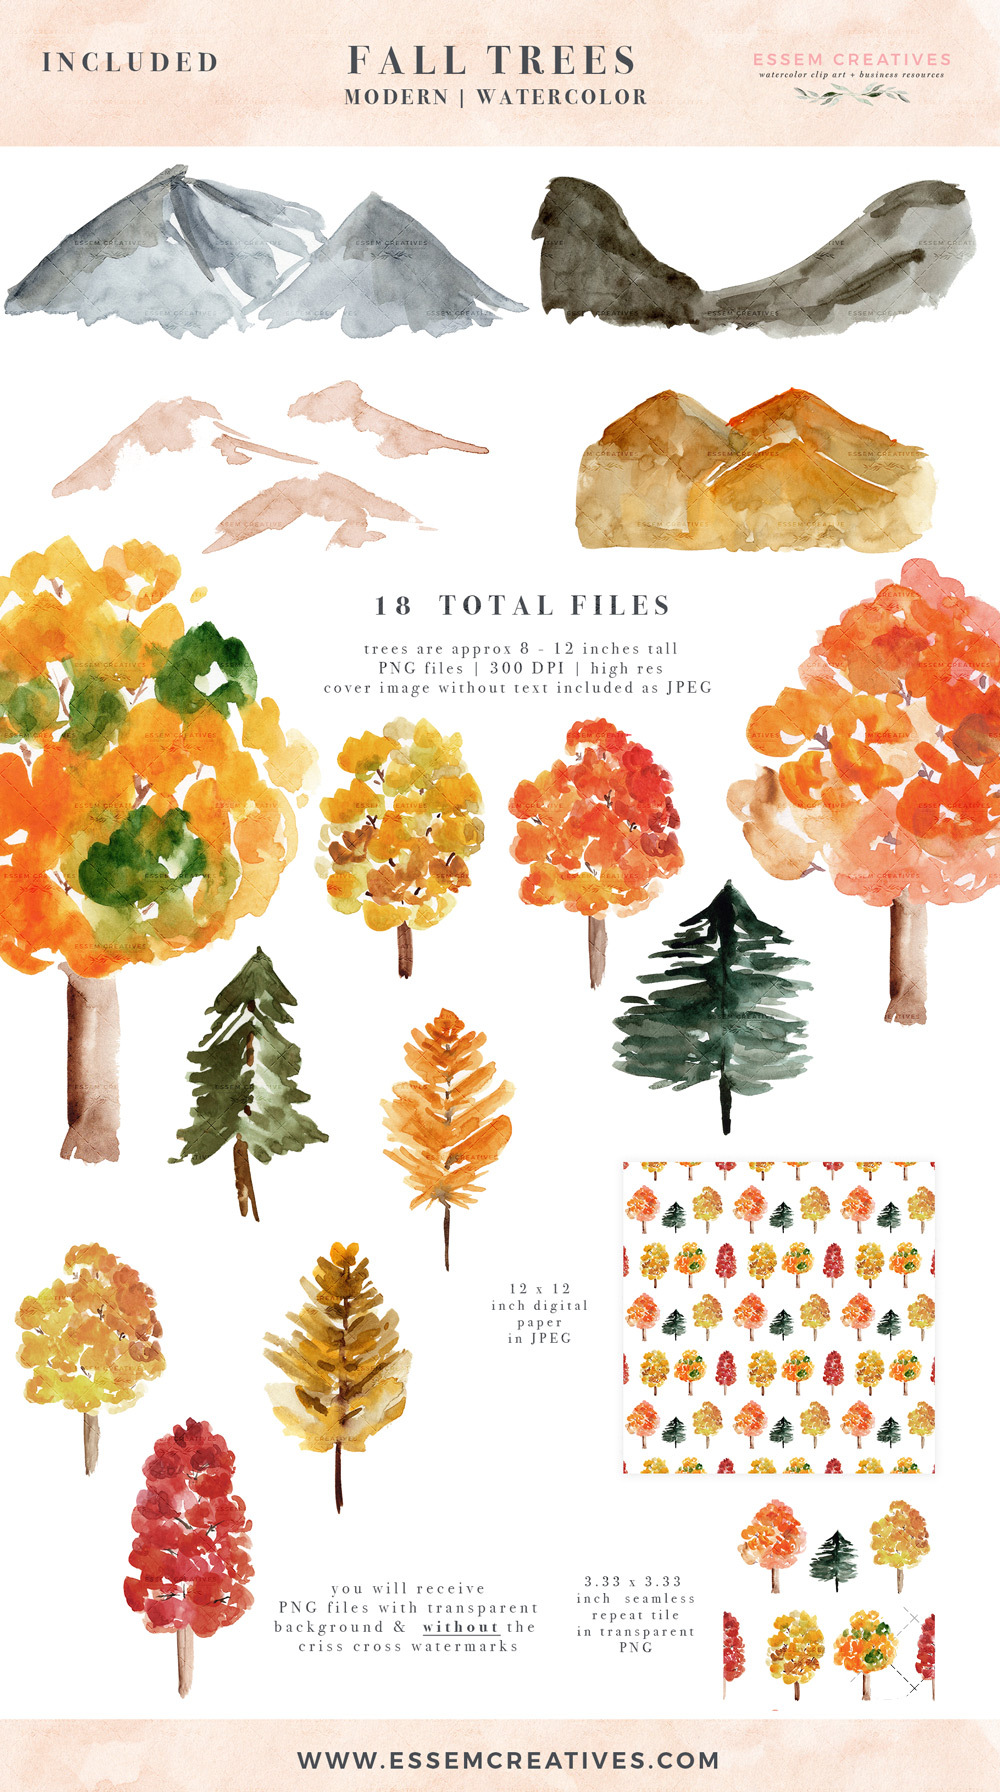 Woodland clipart foliage. Rustic watercolor fall trees